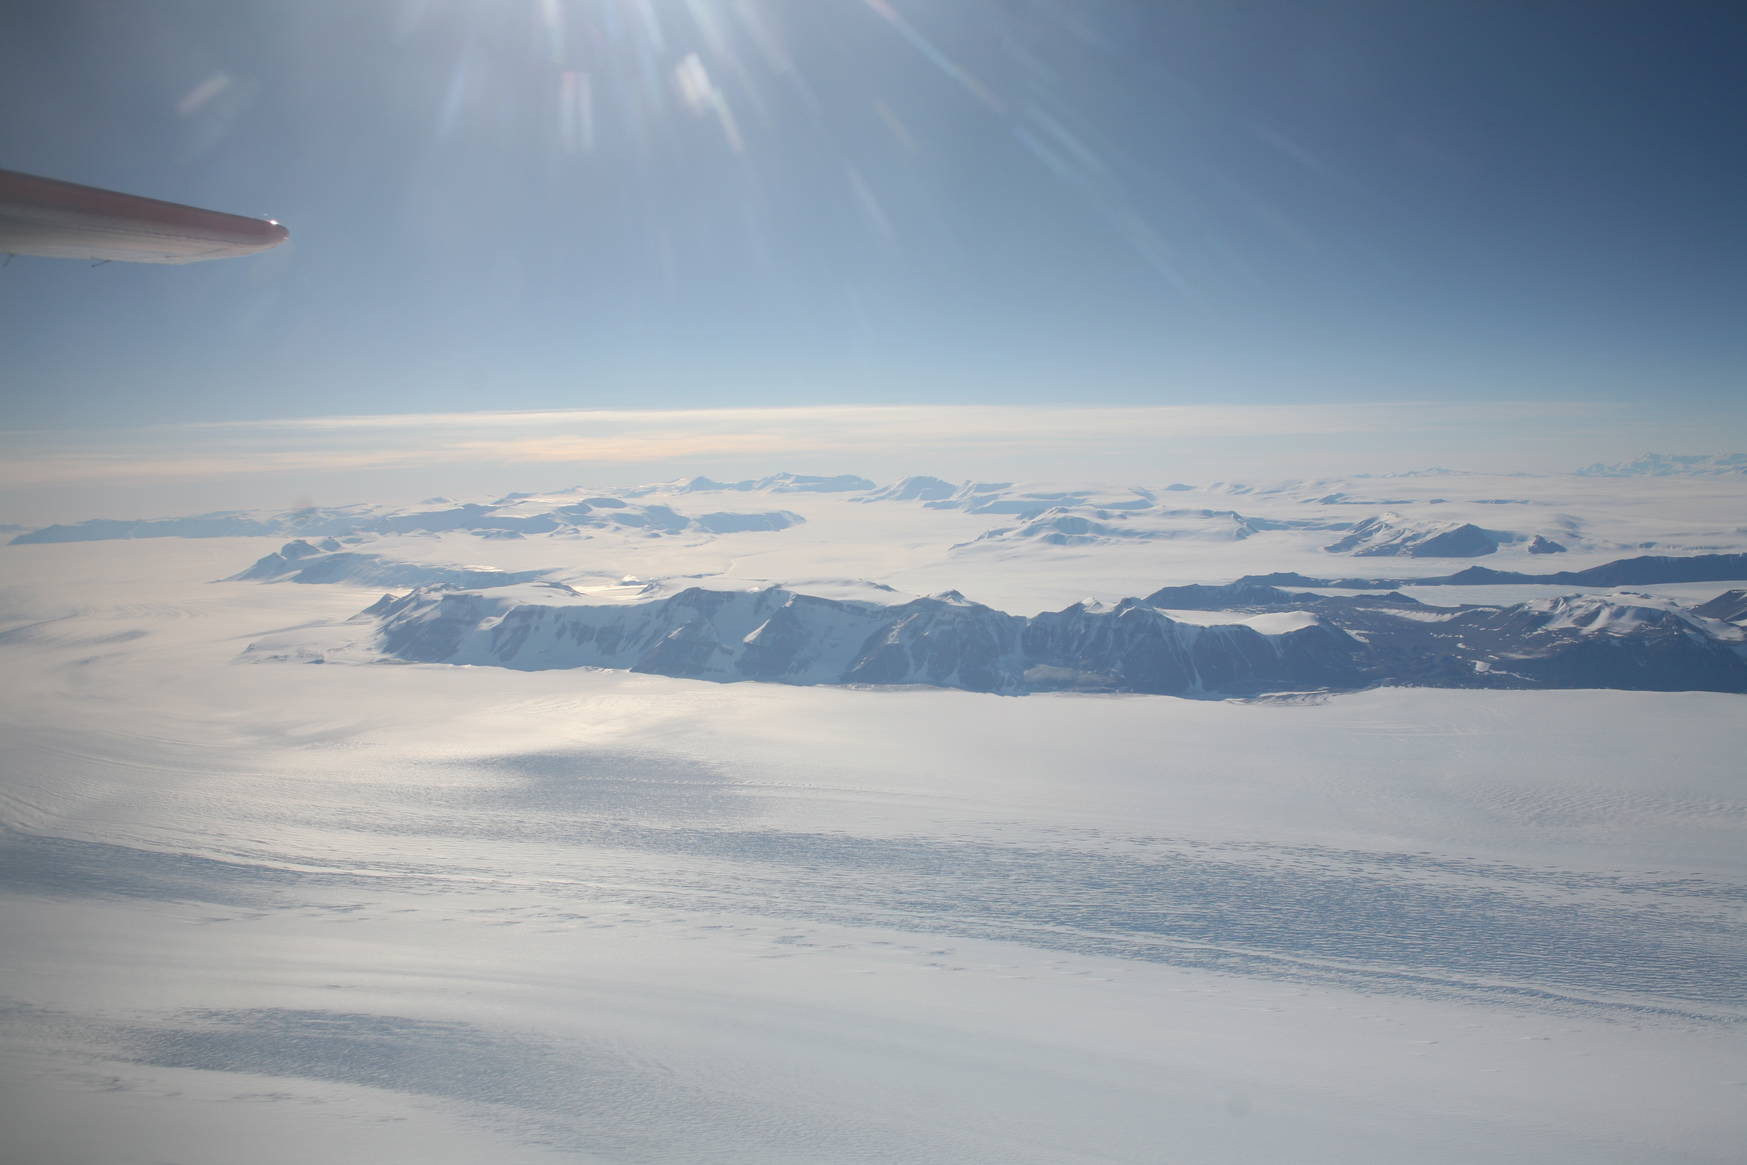 Trans-Antarctic mountains seen from the airplane.